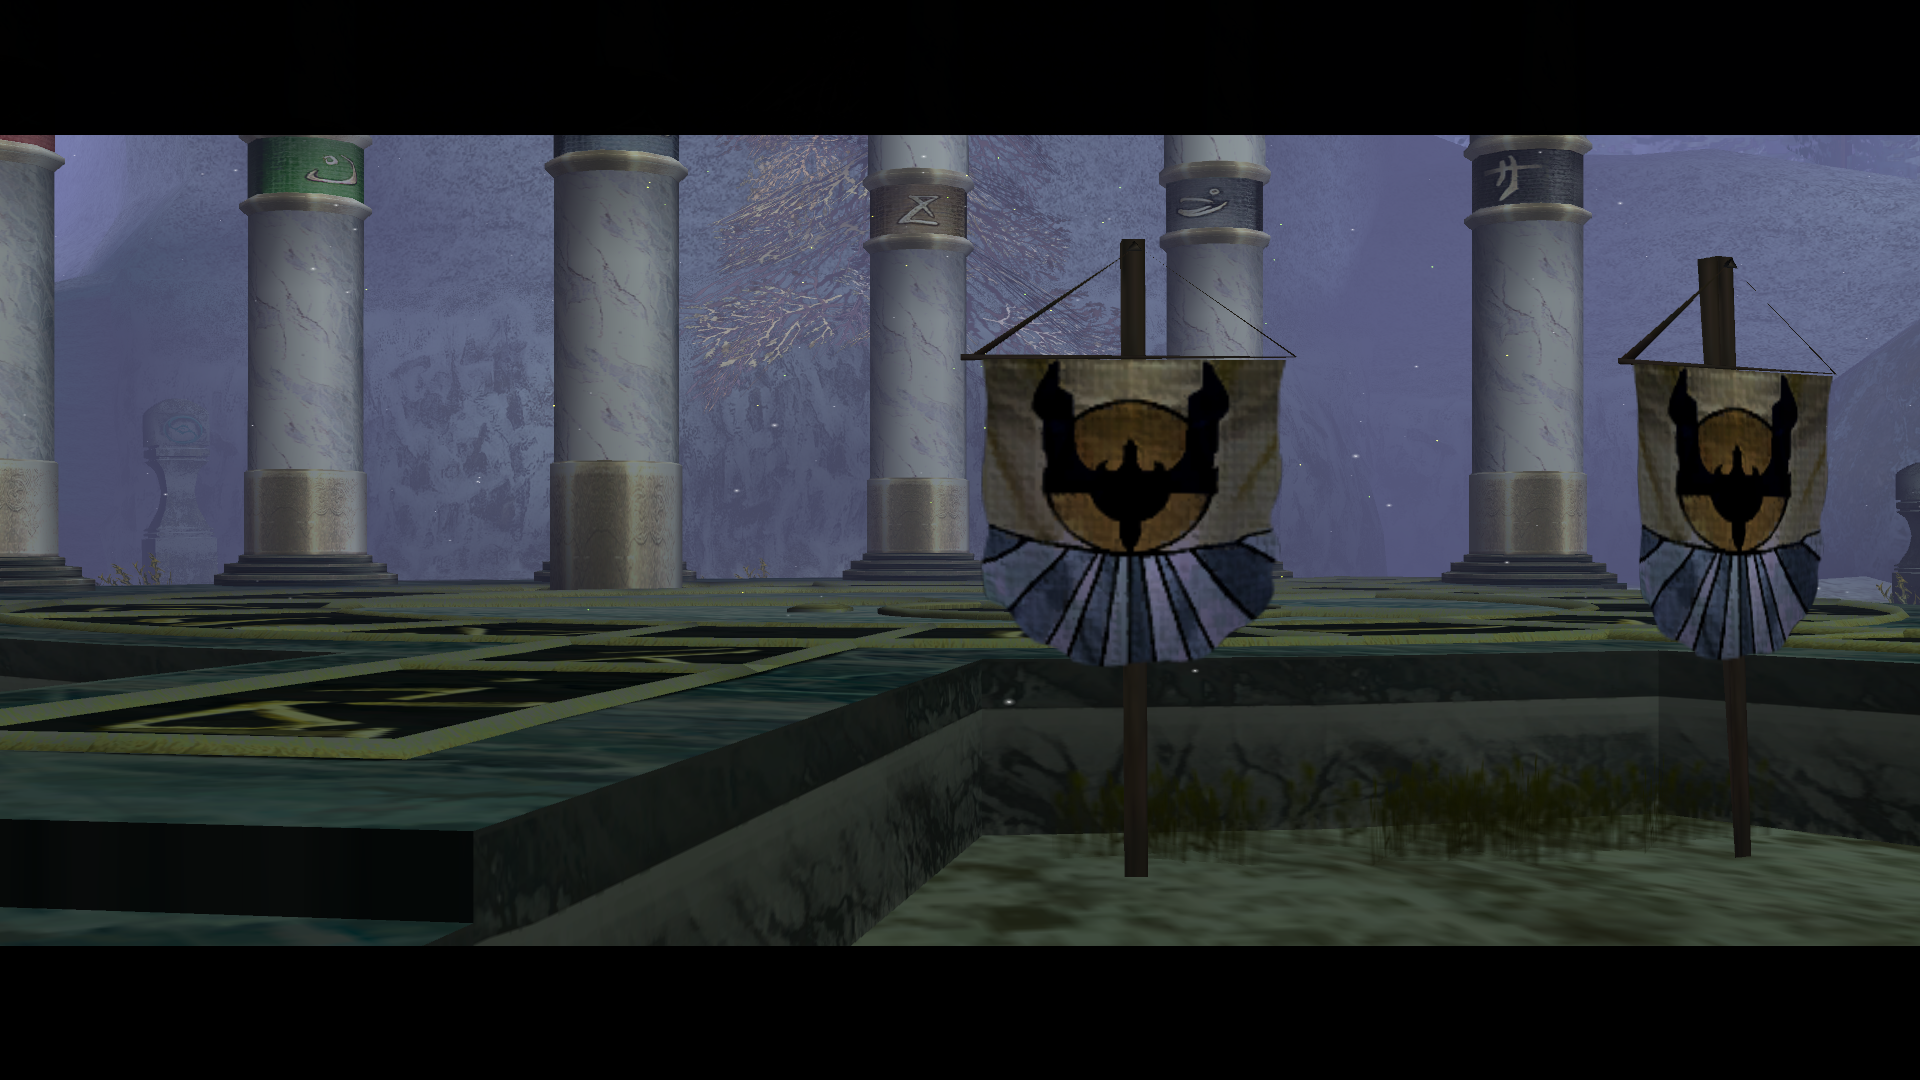 SR2--EraC-Cutscene-KillingFields-Alternate-Pillars-06.png